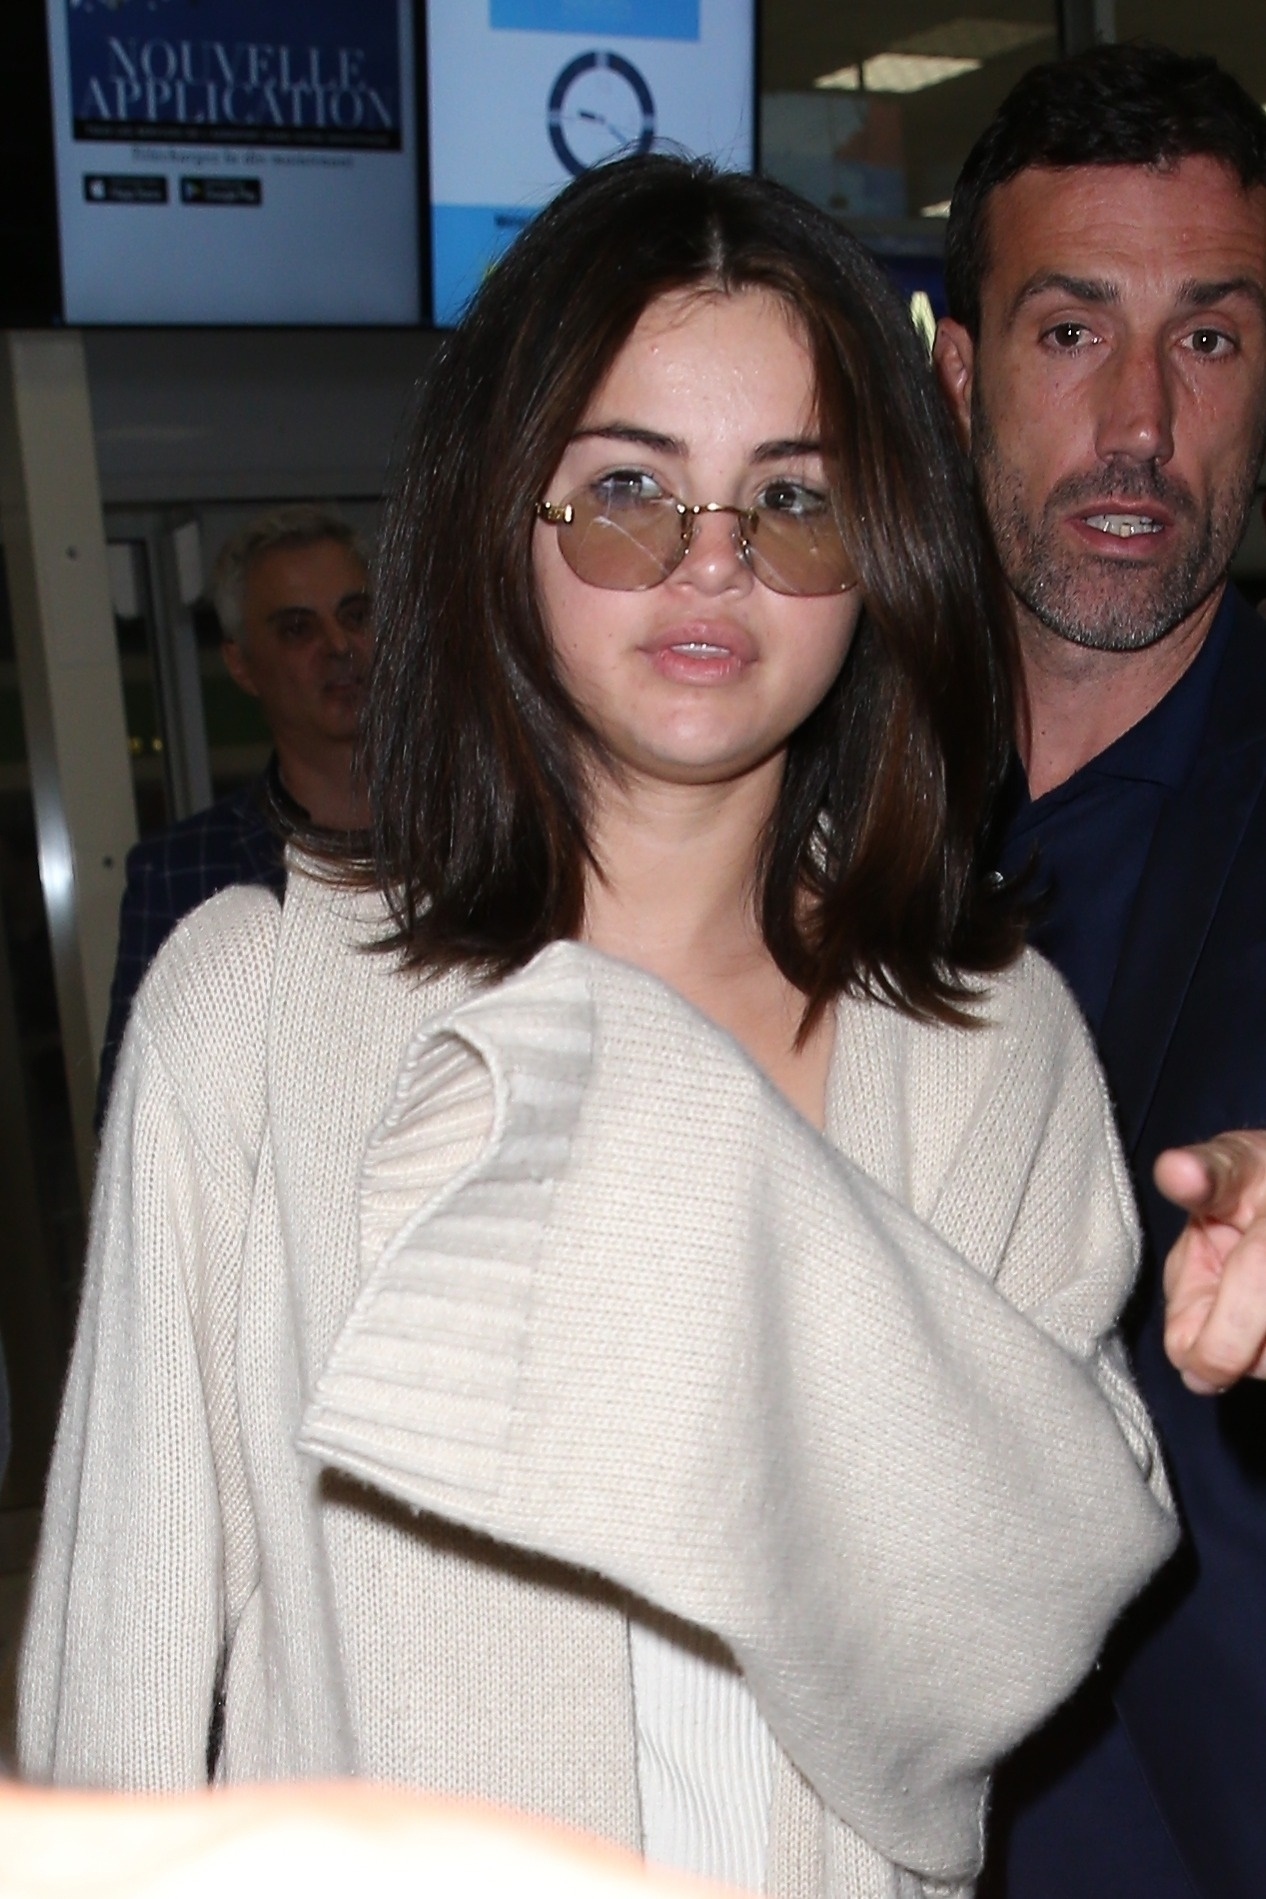 Selena Gomez pictured at Nice Airport / Stephen Crawshaw / BACKGRID , kod: Selena Gomez